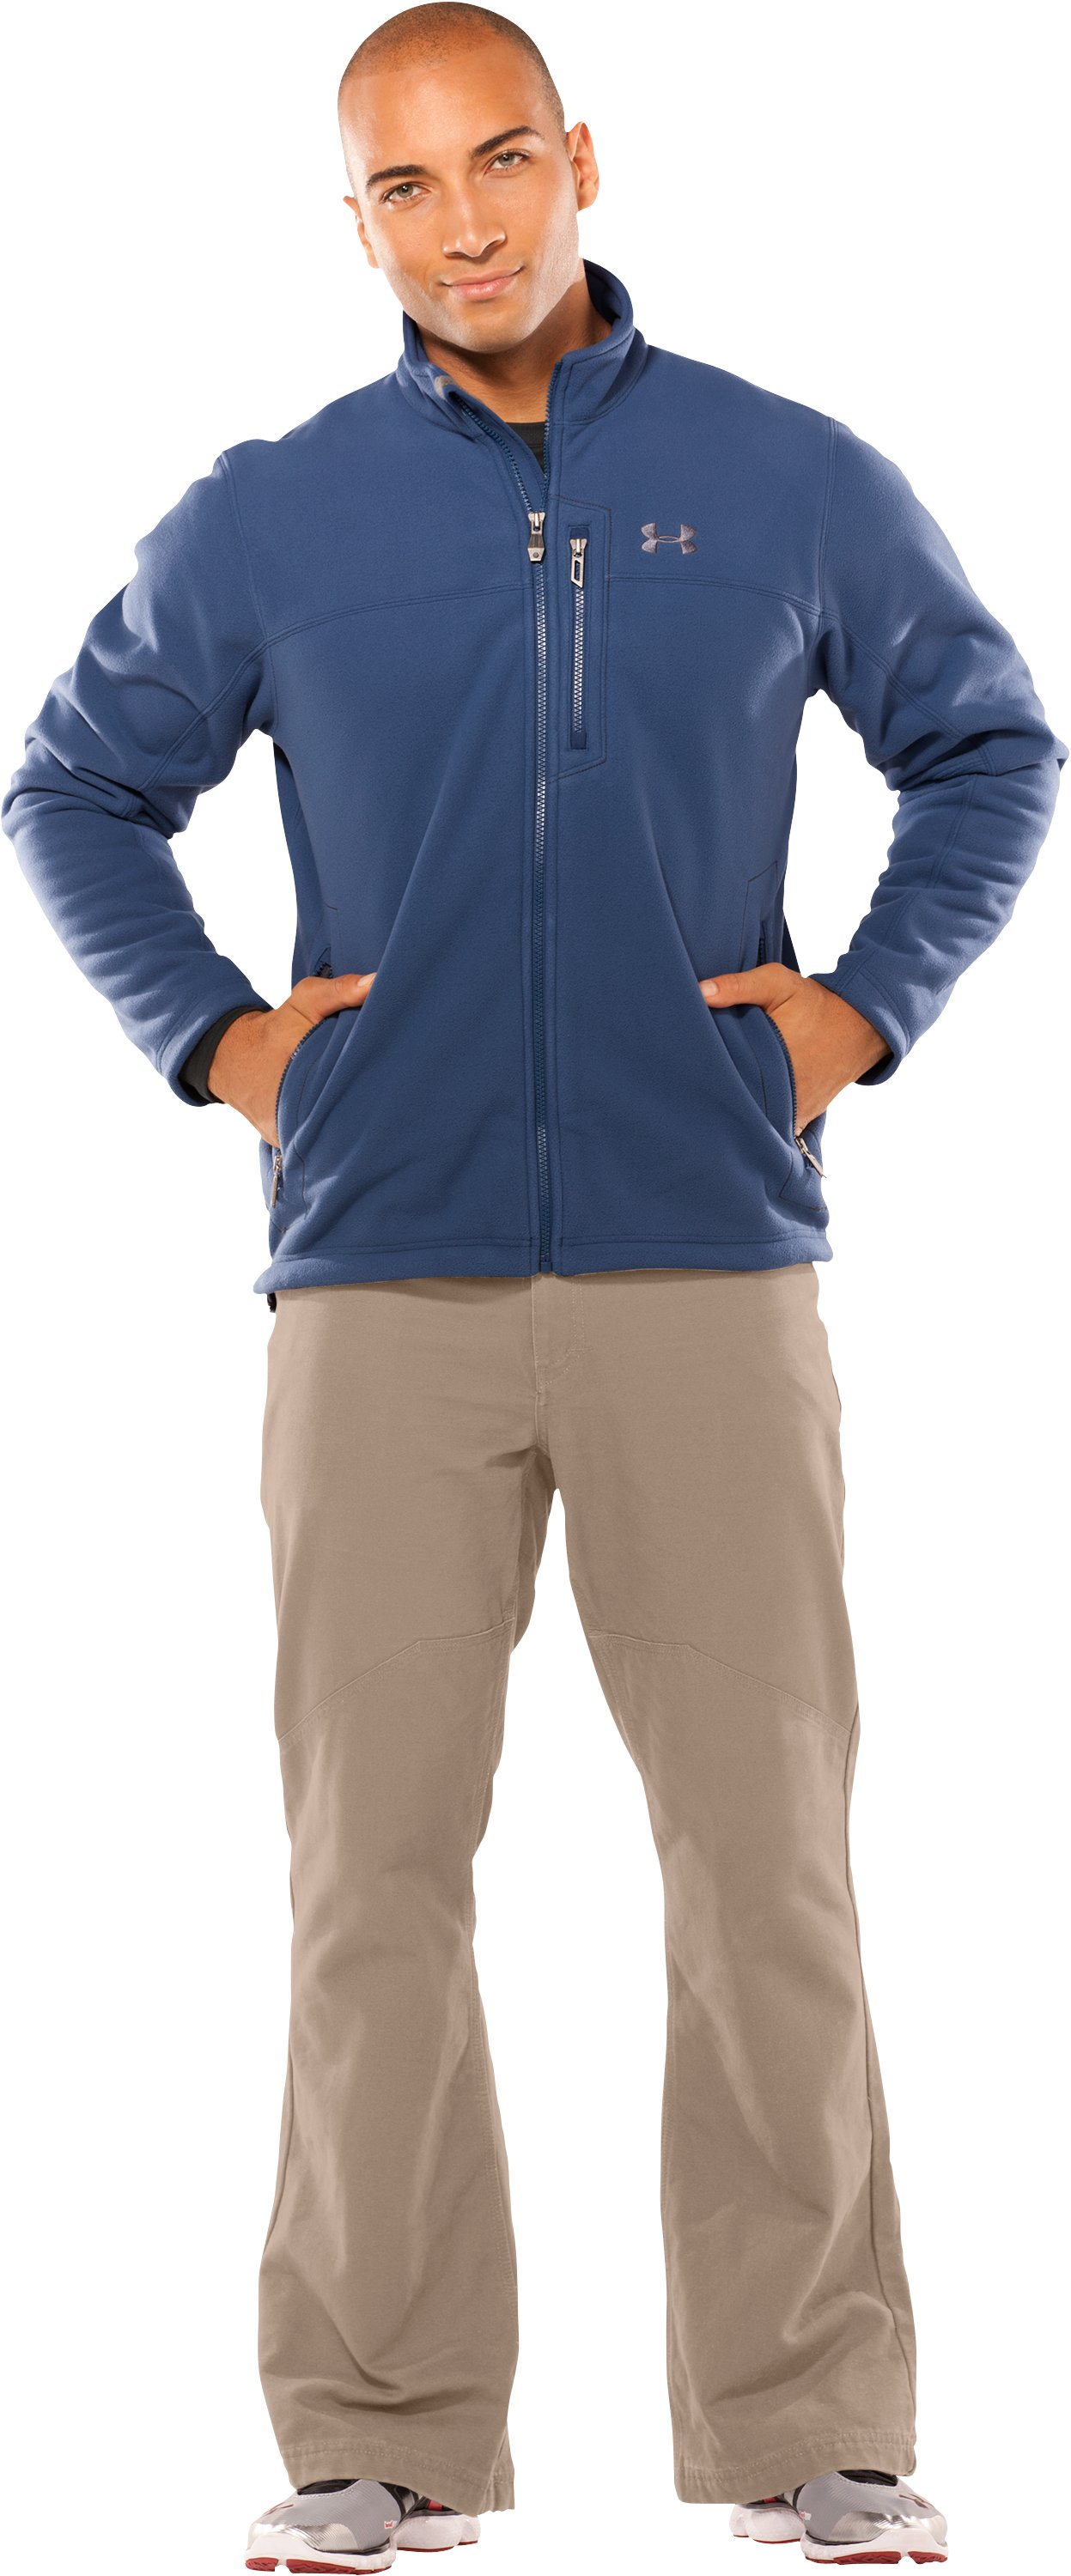 Men's Derecho II Windproof Fleece Jacket, Admiral, Front